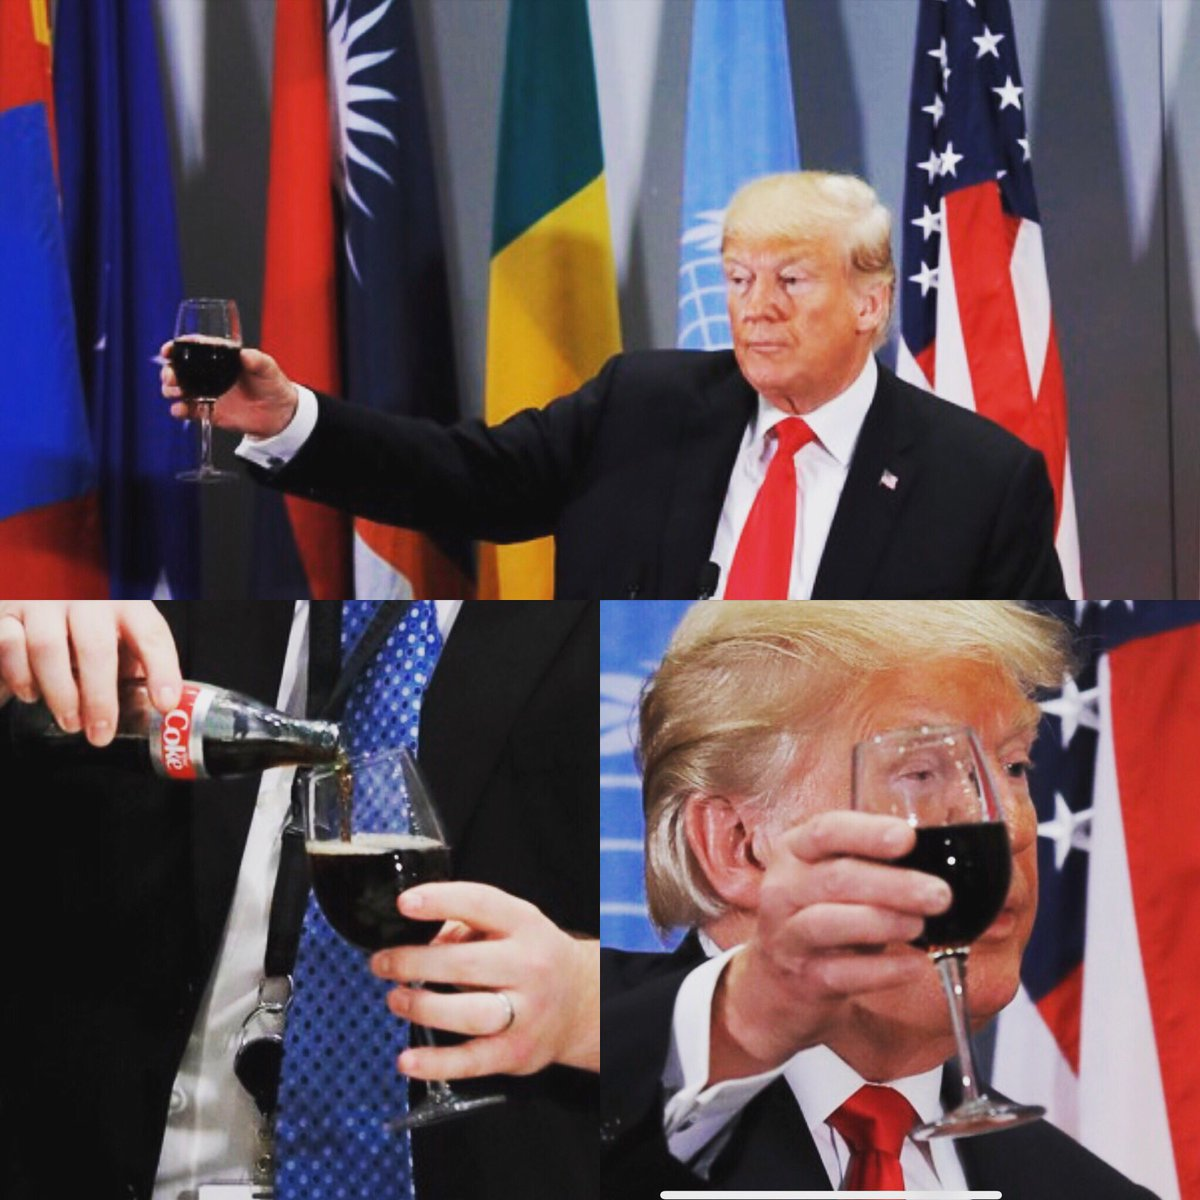 U.S. President Donald Trump raises his glass of Diet Coke in a toast during a luncheon for world leaders during the 73rd session of the United Nations General Assembly in New York, U.S., September 25, 2018.